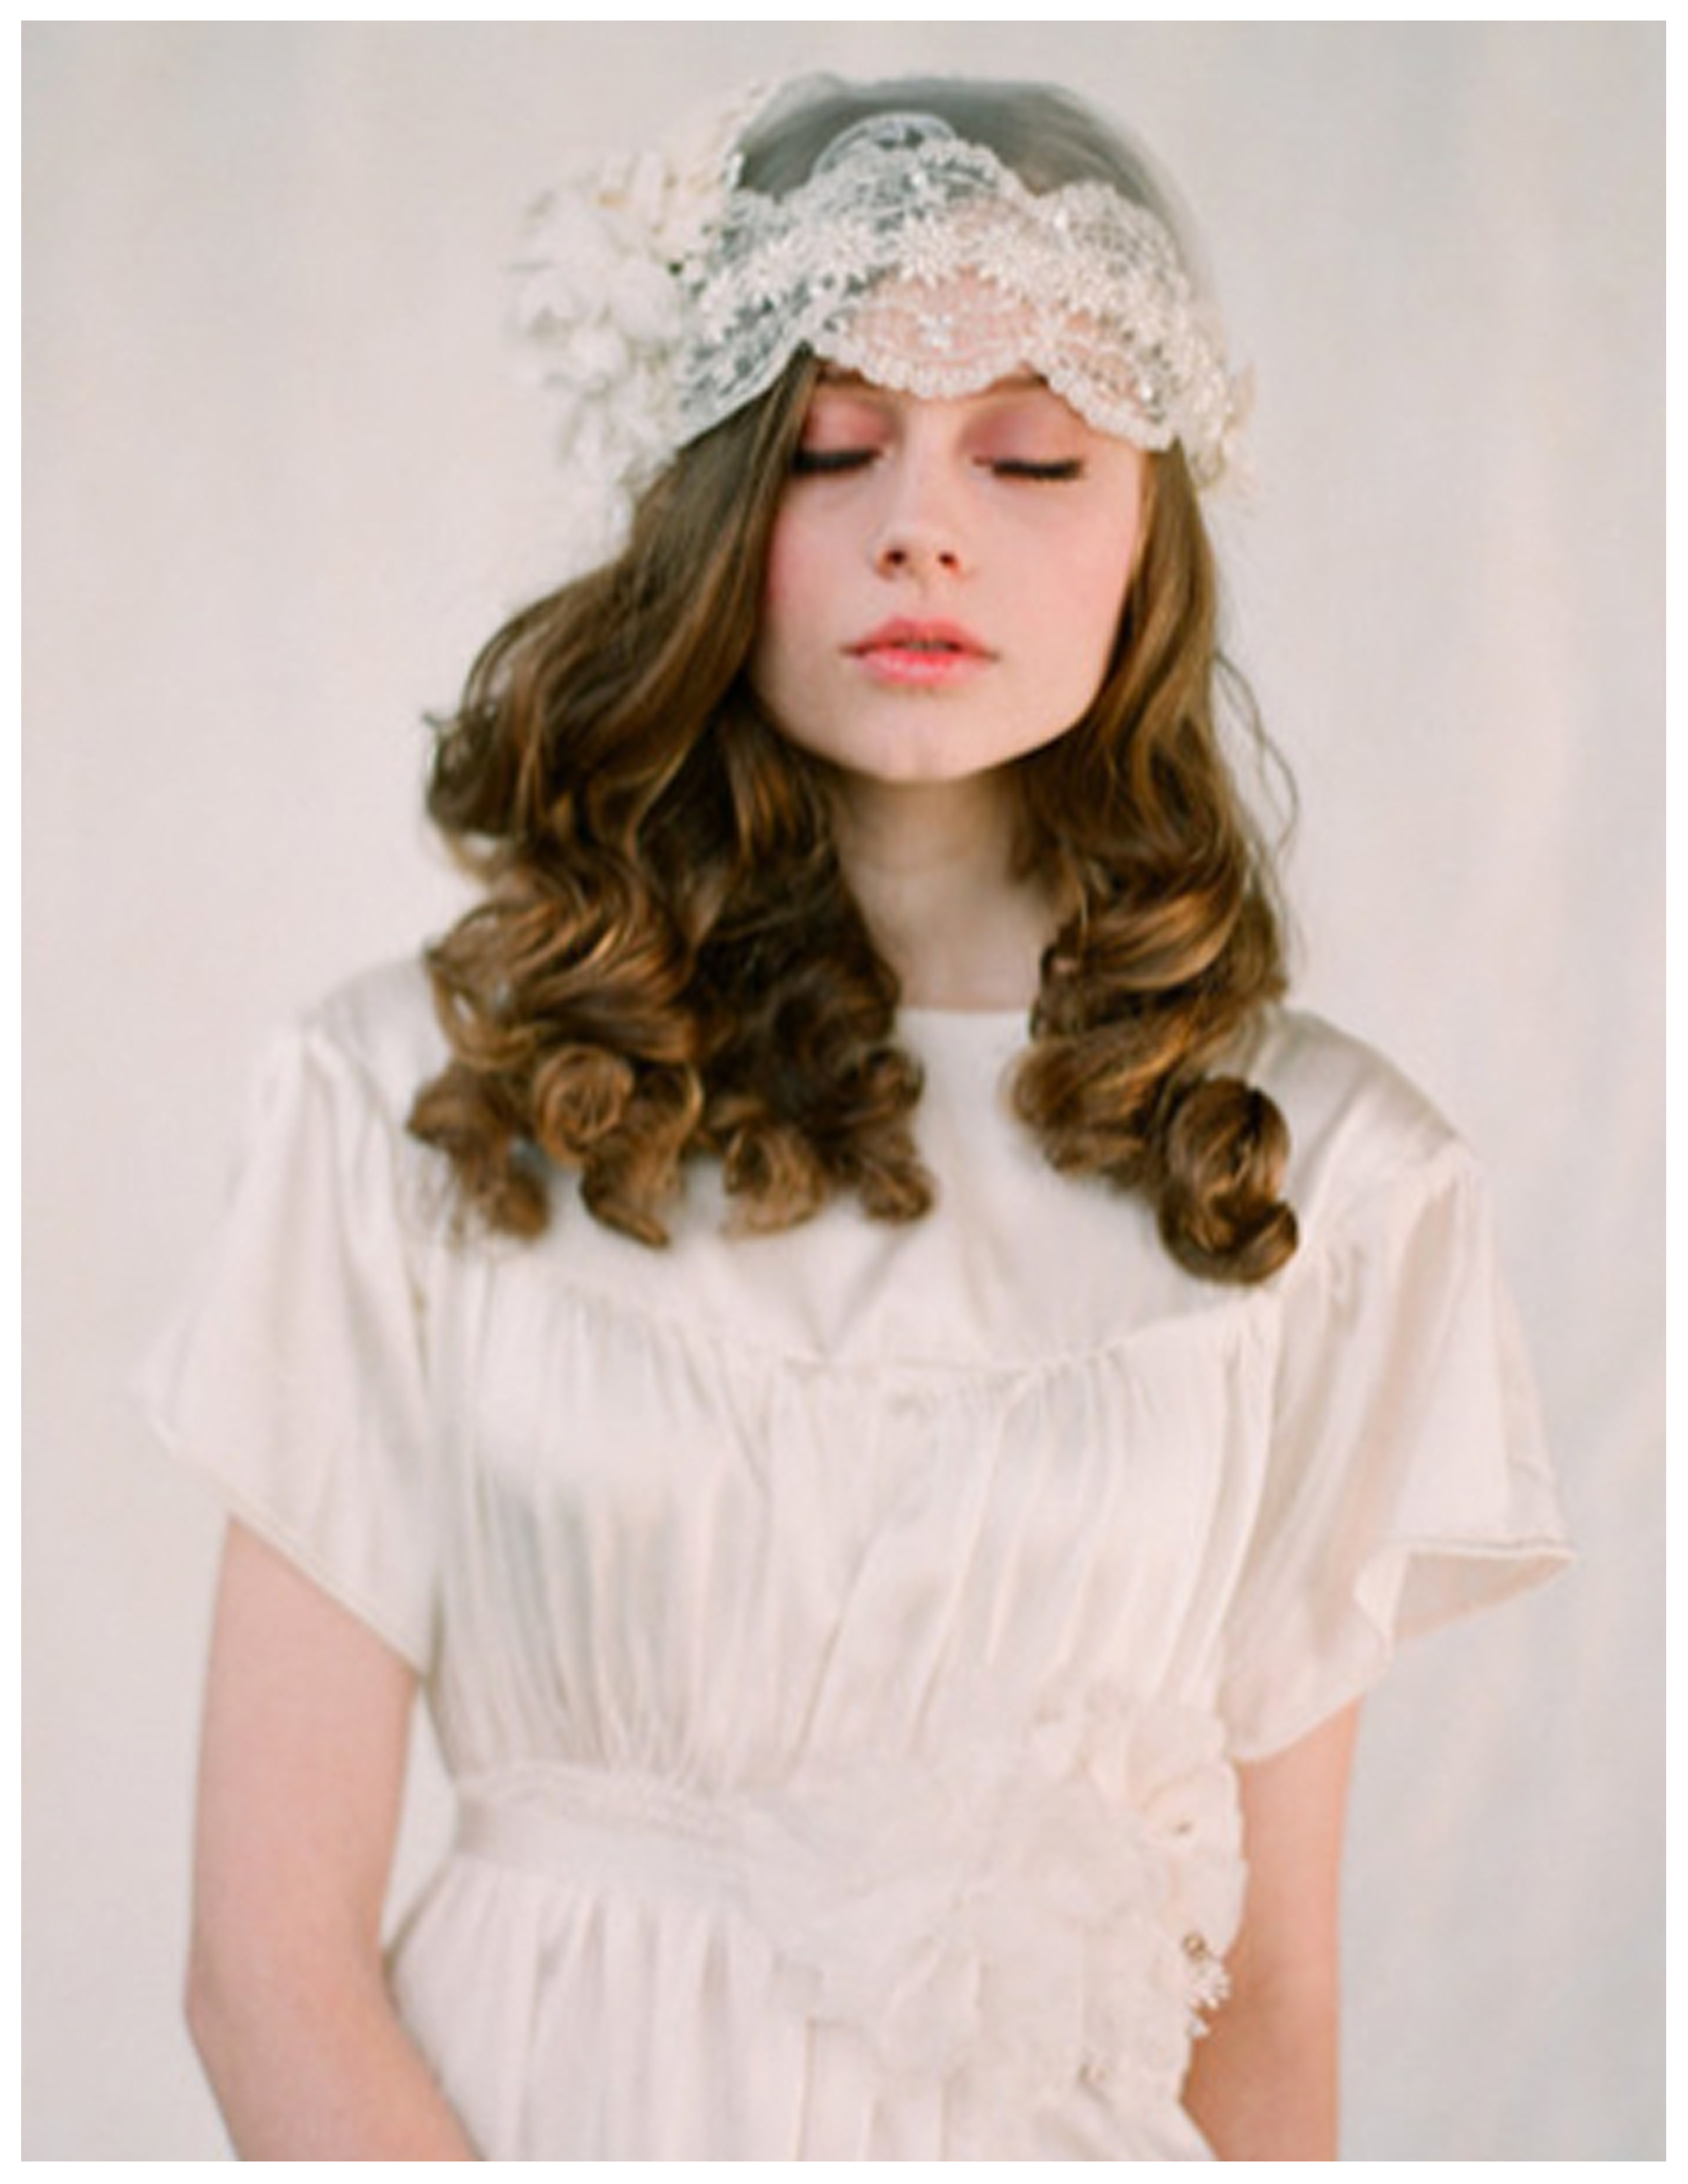 Br Bridal Headpieces Twigs And Honey - The following can be found at first picture bridal veil twigs and honey second picture bridal cap twigs and honey third picture bridal